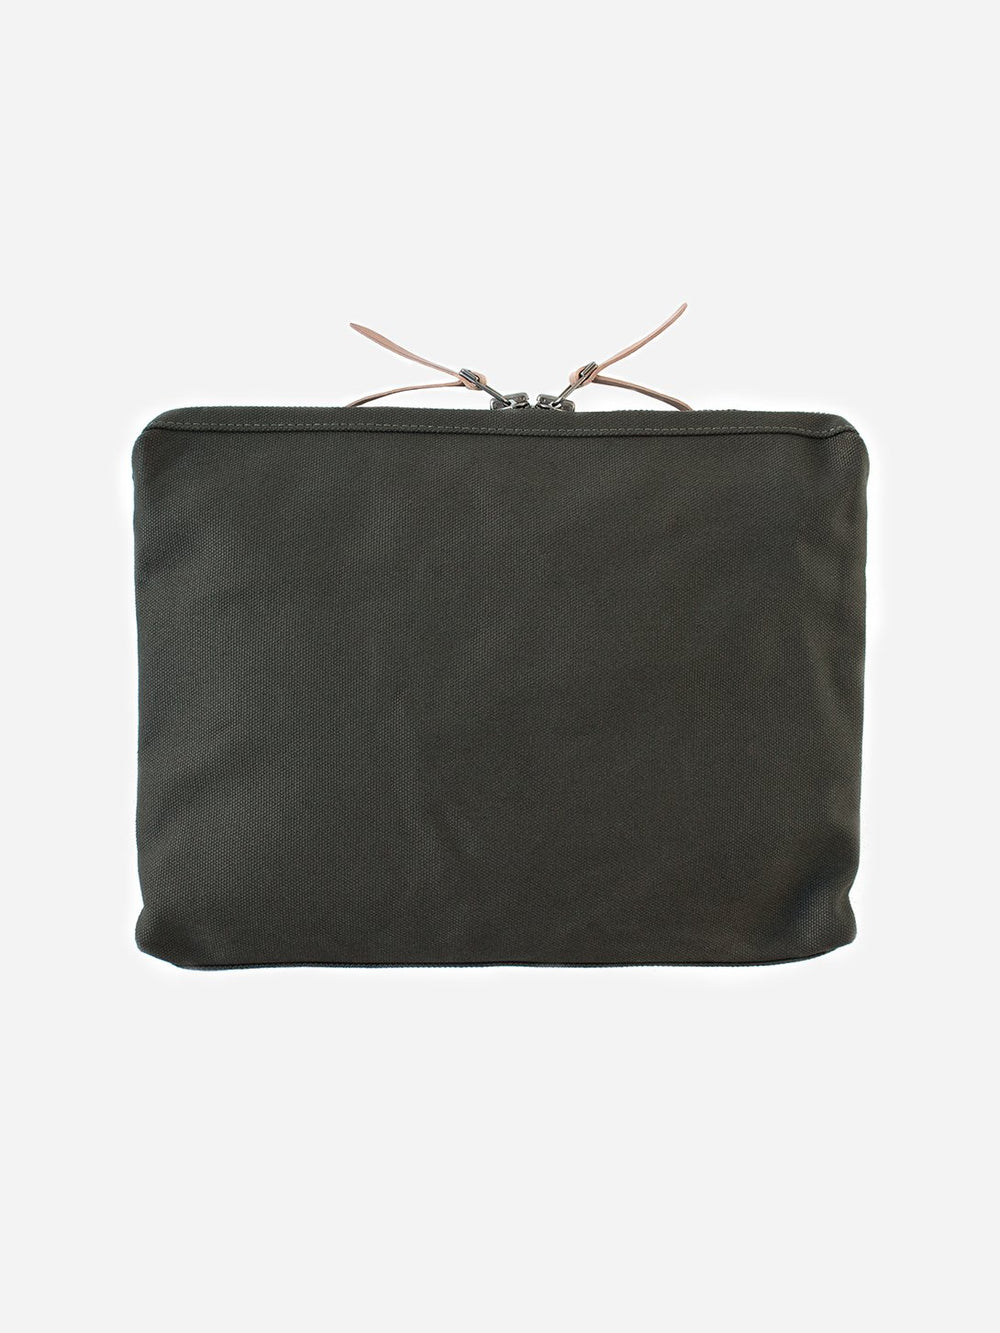 ARMY GREEN men and women unisex canvas organizational pouch organizer pouch large makr